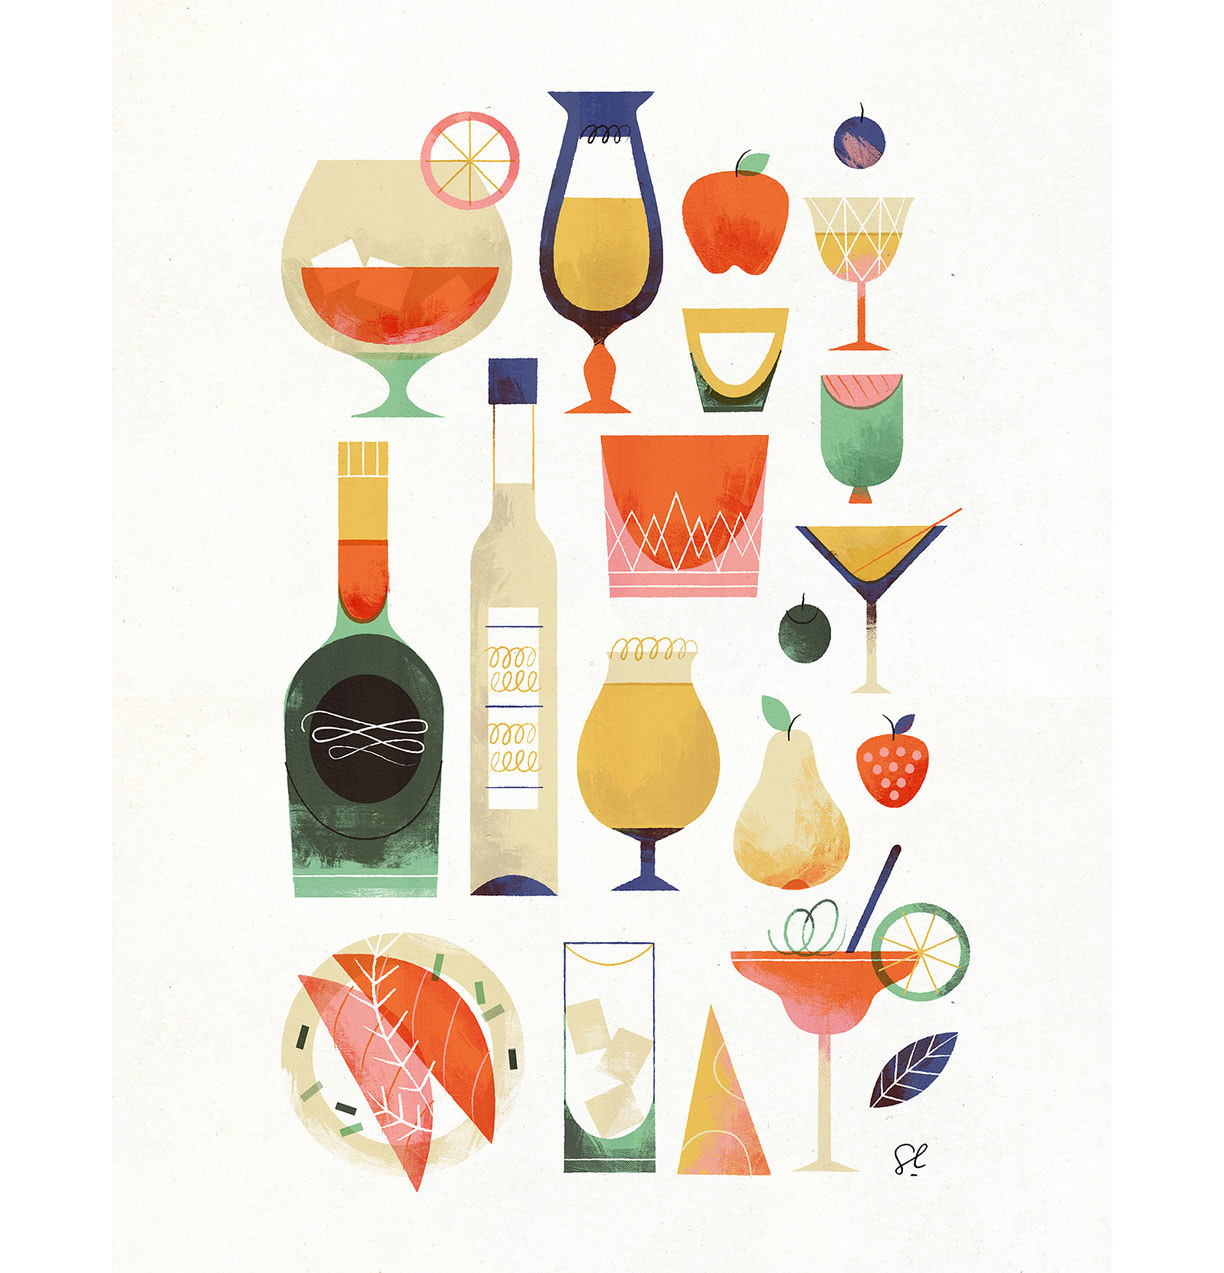 The poster featuring an illustration of a variety of cocktails, bottles, and fruits